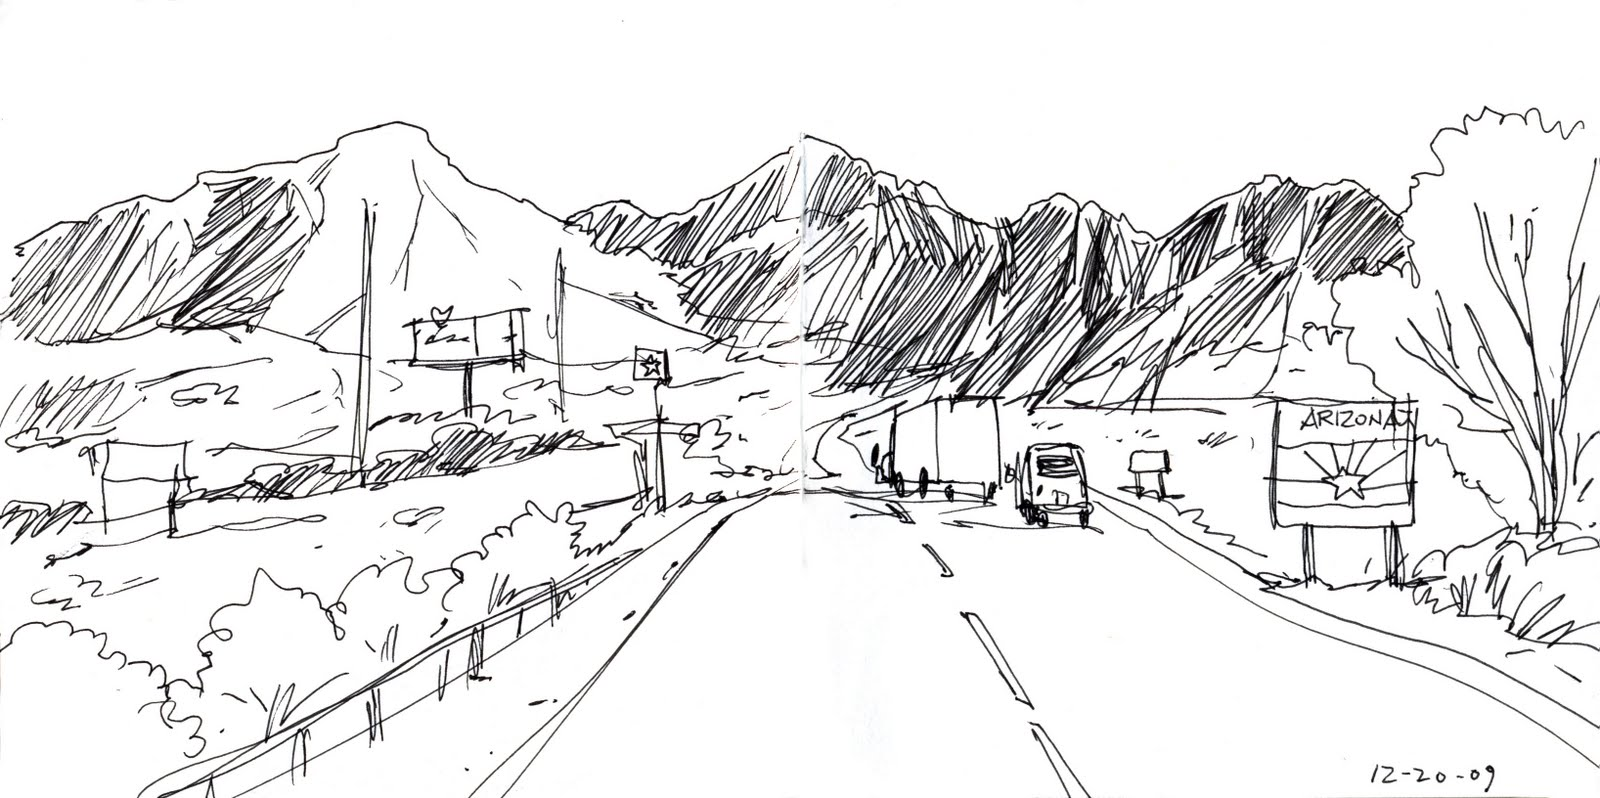 Works In Progress On Location Drawing On Location In